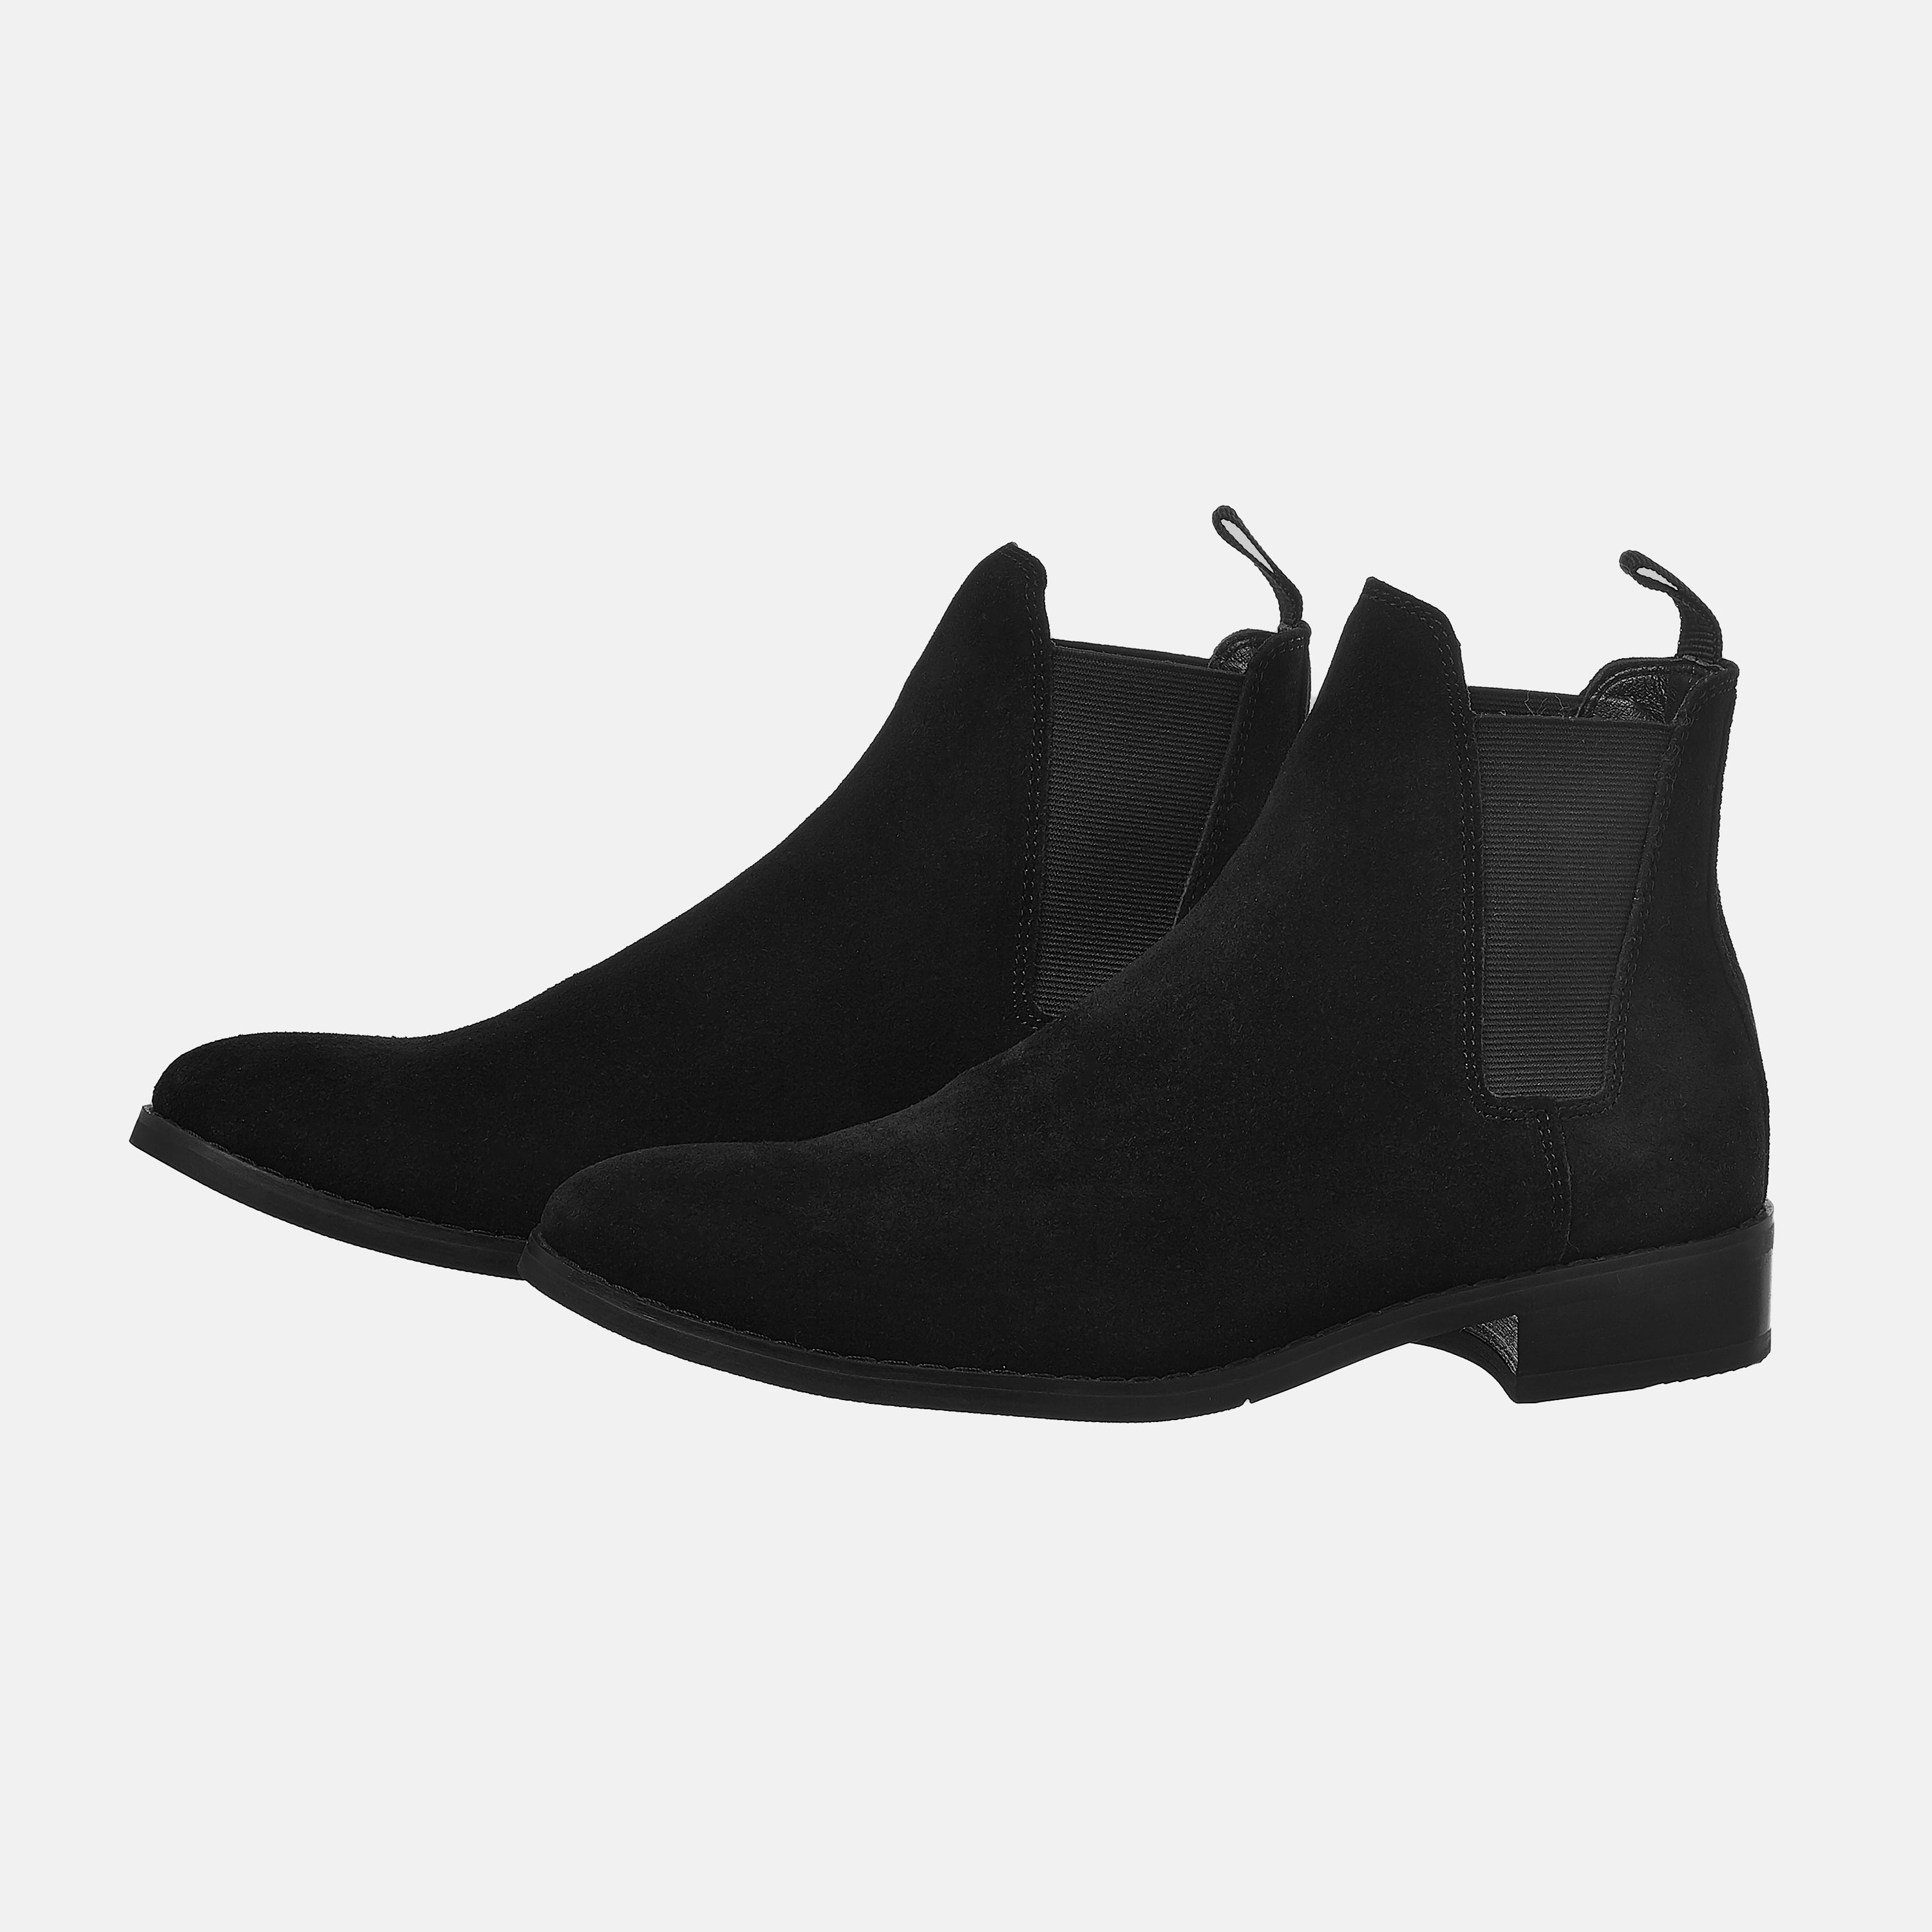 Suede Chelsea Boots In Black Suede Chelsea Boots In Black 2 1